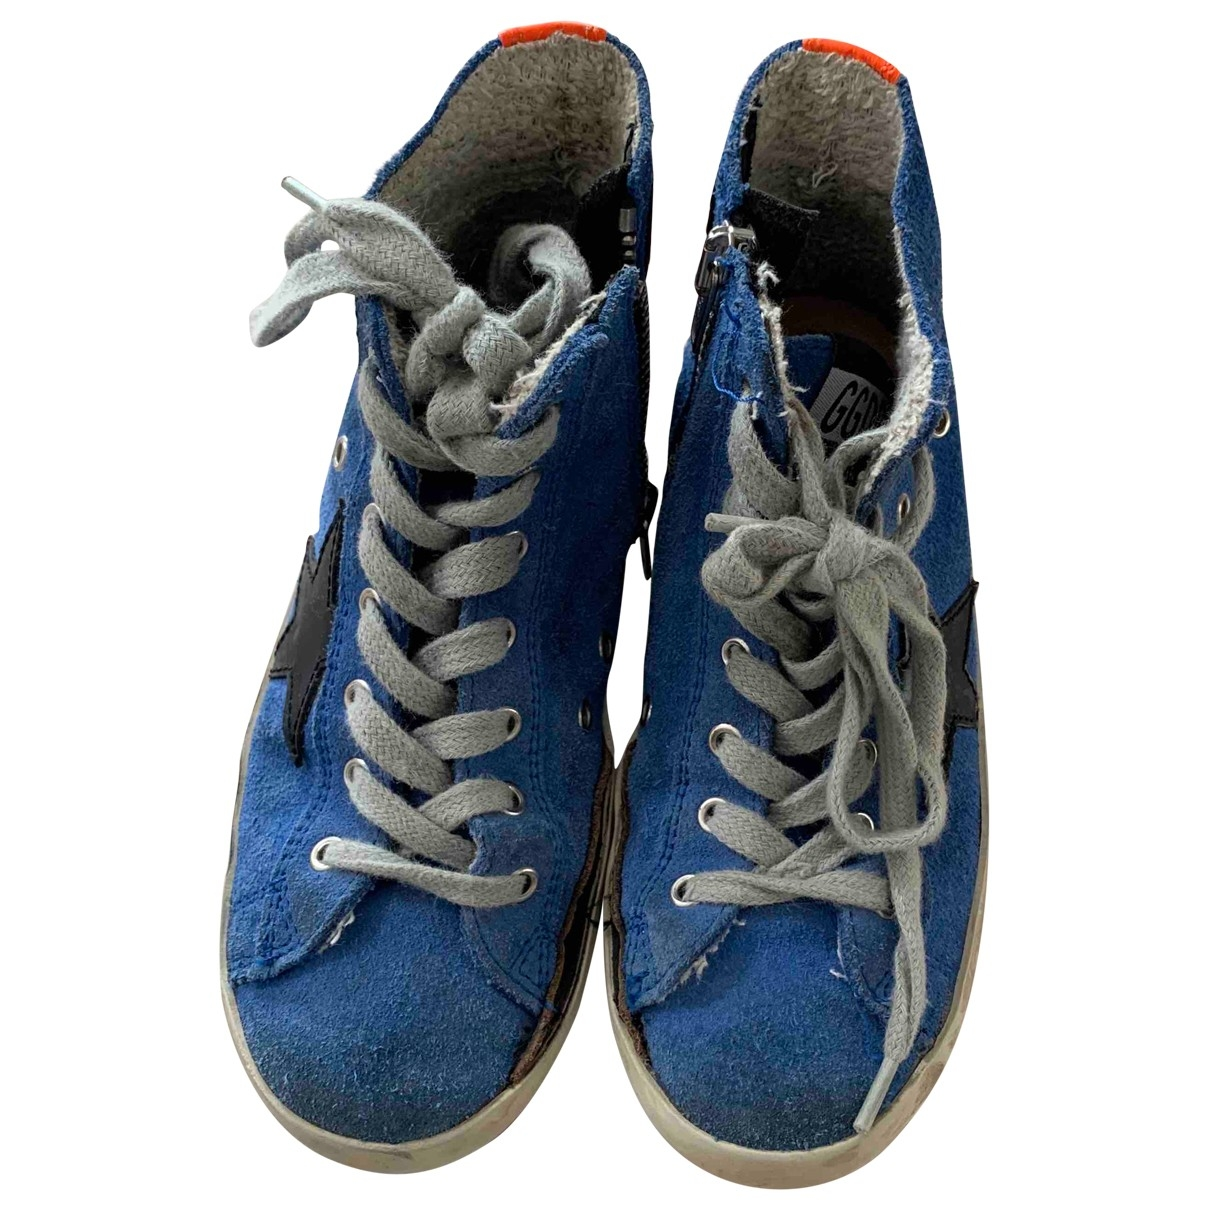 Golden Goose - Baskets Francy pour enfant en suede - bleu